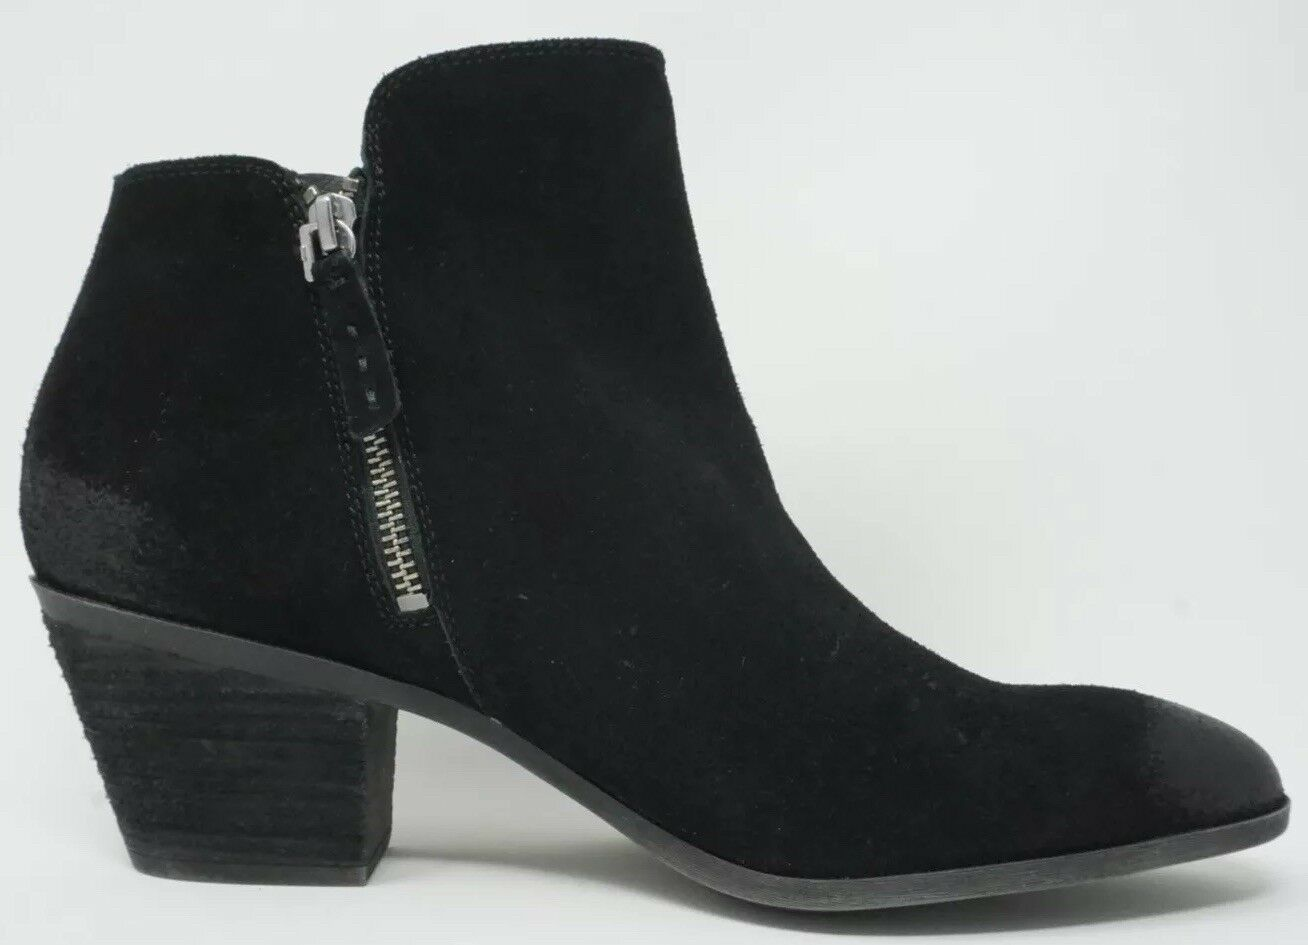 Frye Judy Zip Bootie Womens Ankle Boot Suede Black Size 11